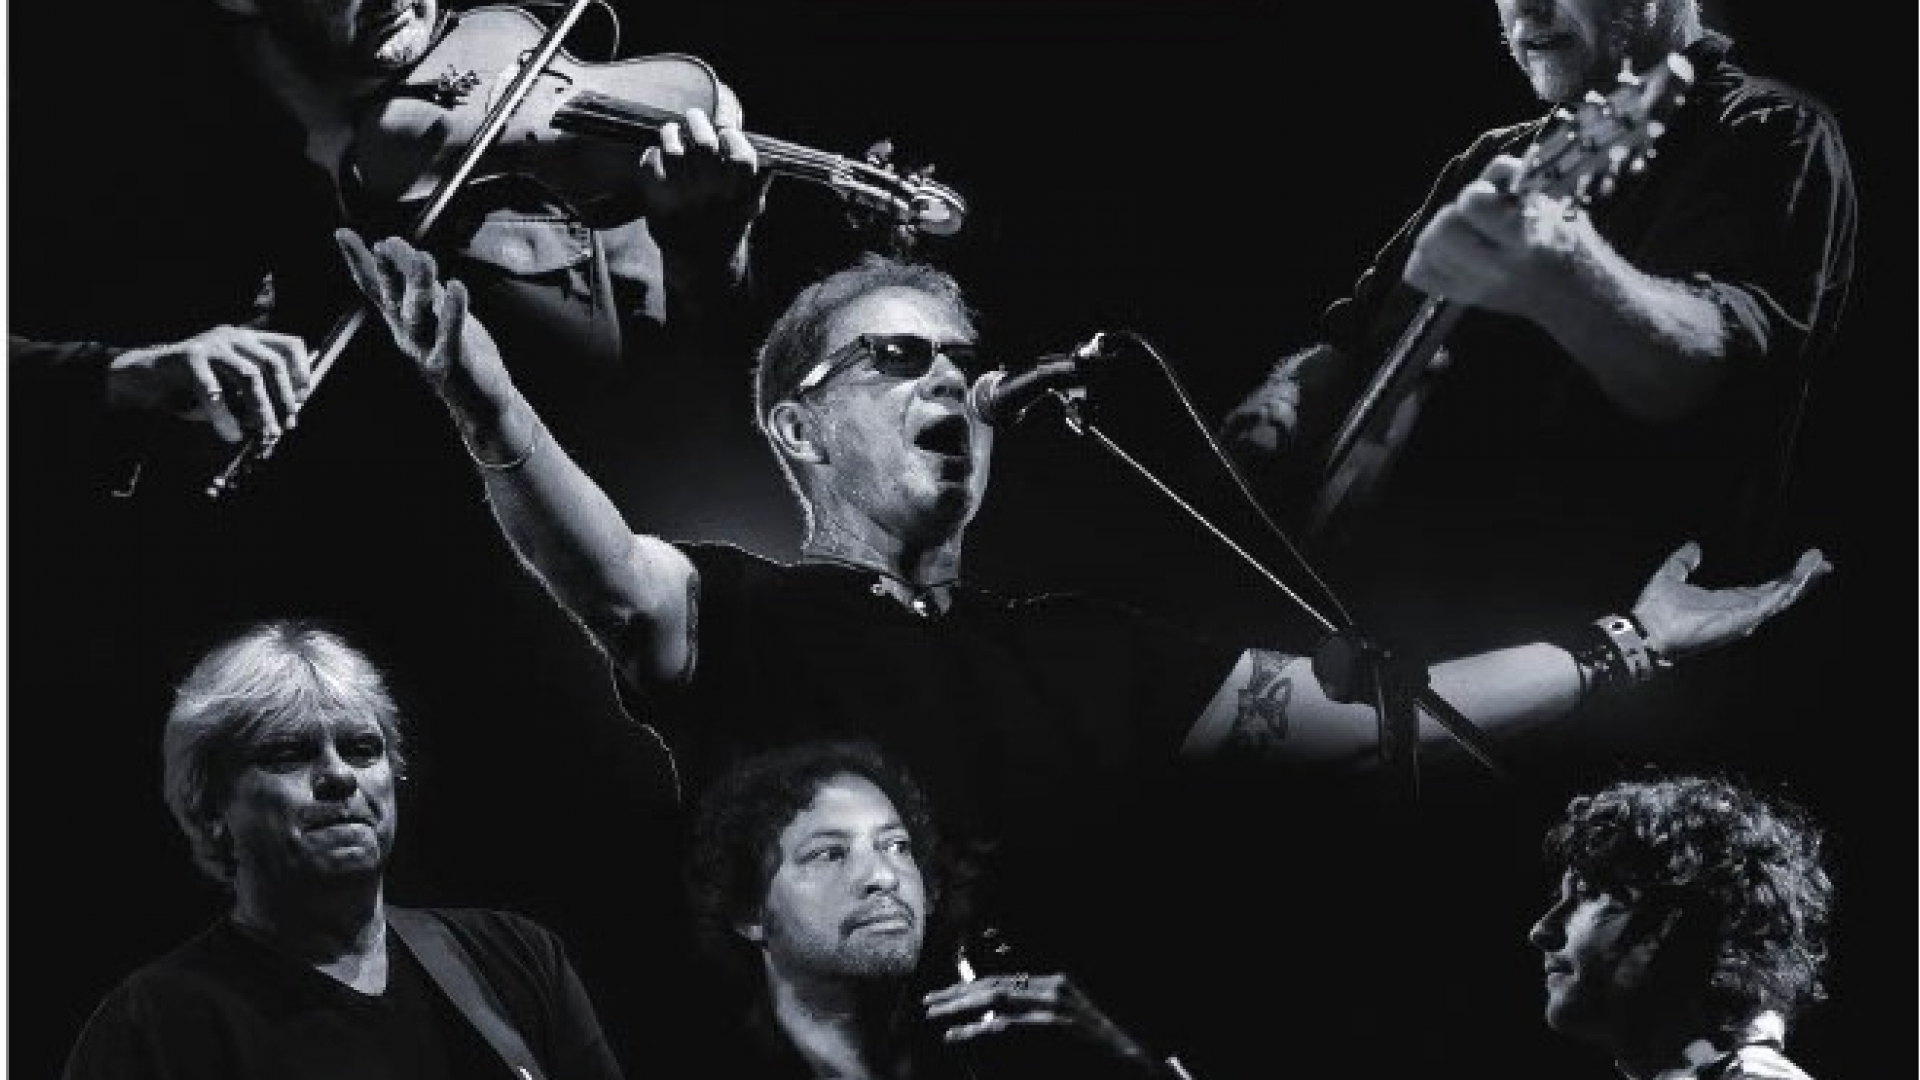 NY DATO: Koncert: Oysterband Tour 2021 @ Industrien